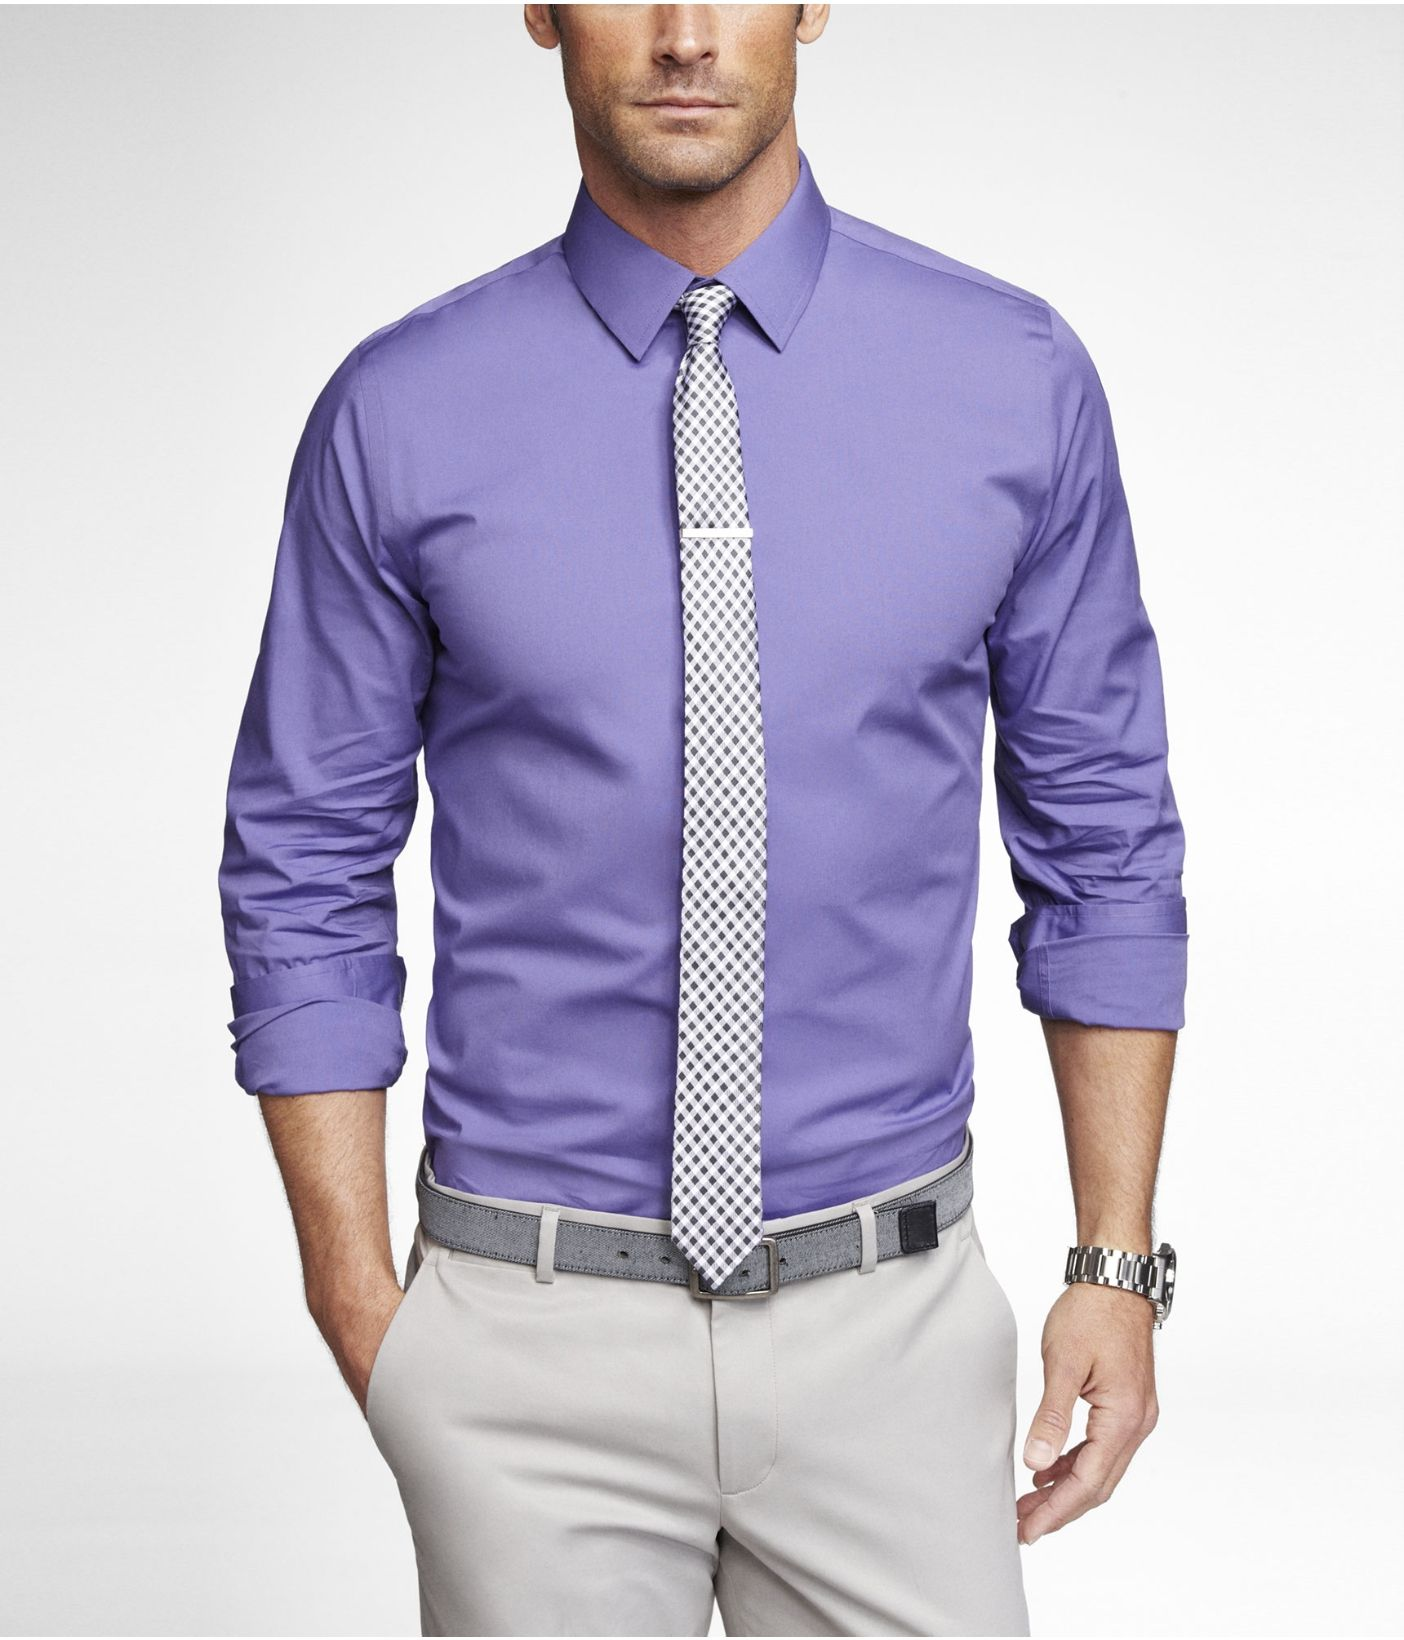 b3ea0fb6e purple dress shirt